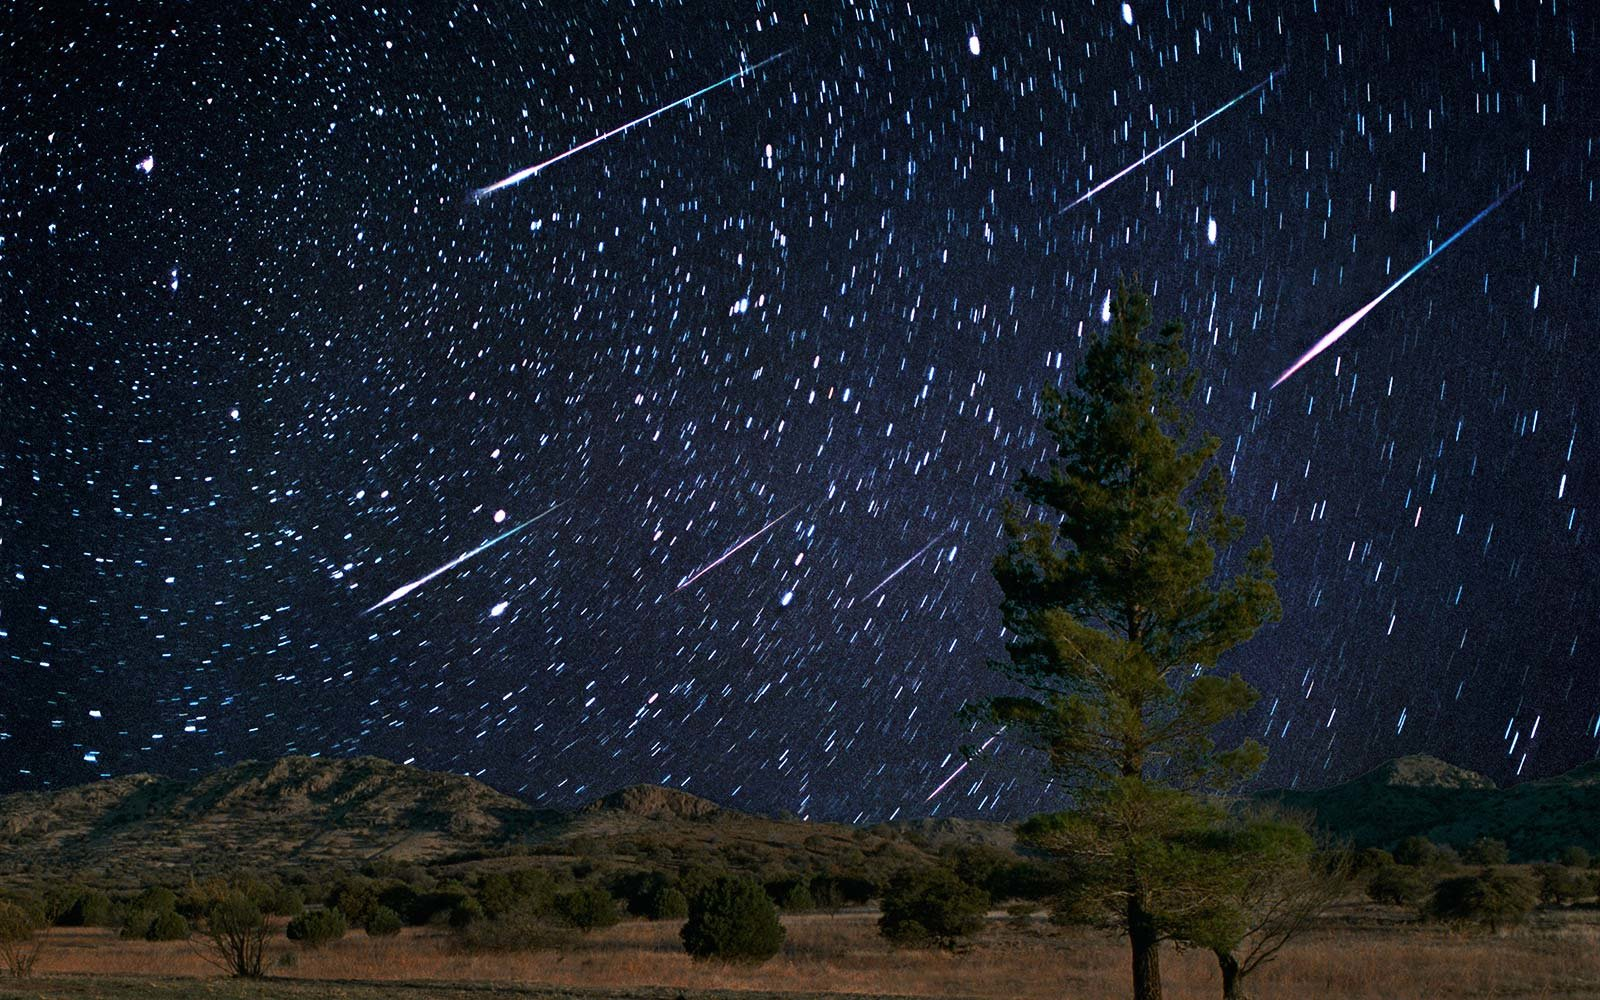 Tonight S Spectacular Meteor Shower Will Fill The Sky With